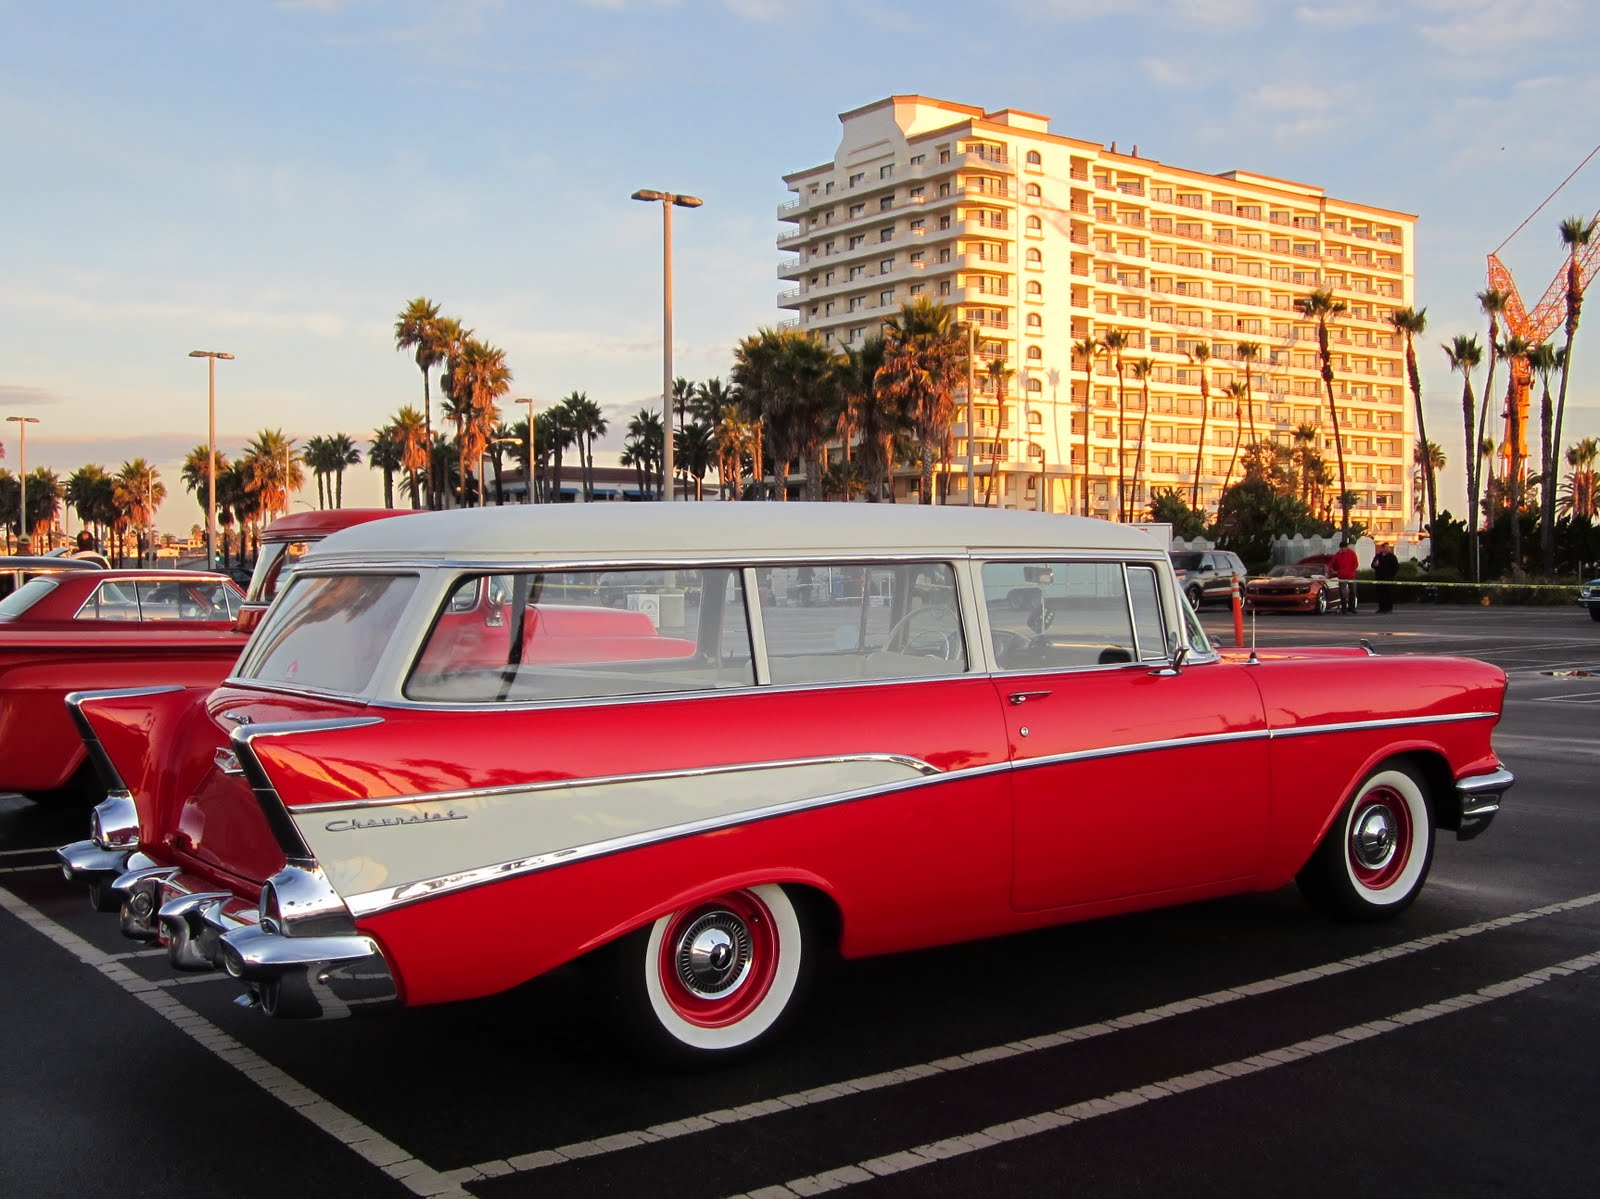 Covering Classic Cars Surf City USA Car Show In Huntington Beach - Car show huntington beach